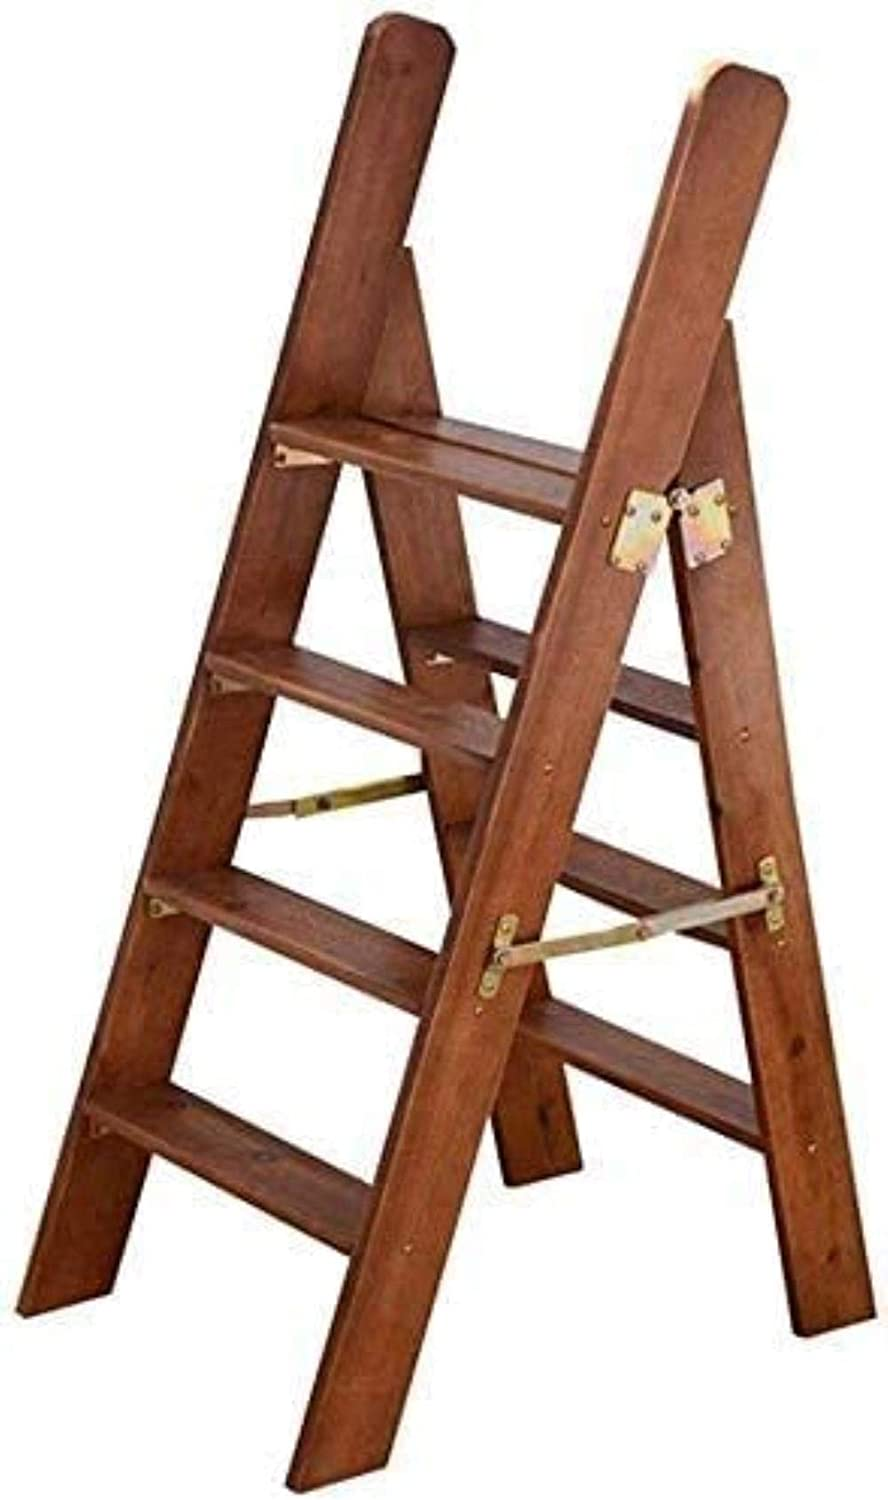 Spring new work one after another JYHQ Step Stool 70% OFF Outlet Solid Wood Folding Library 4 Steps Home Ladder